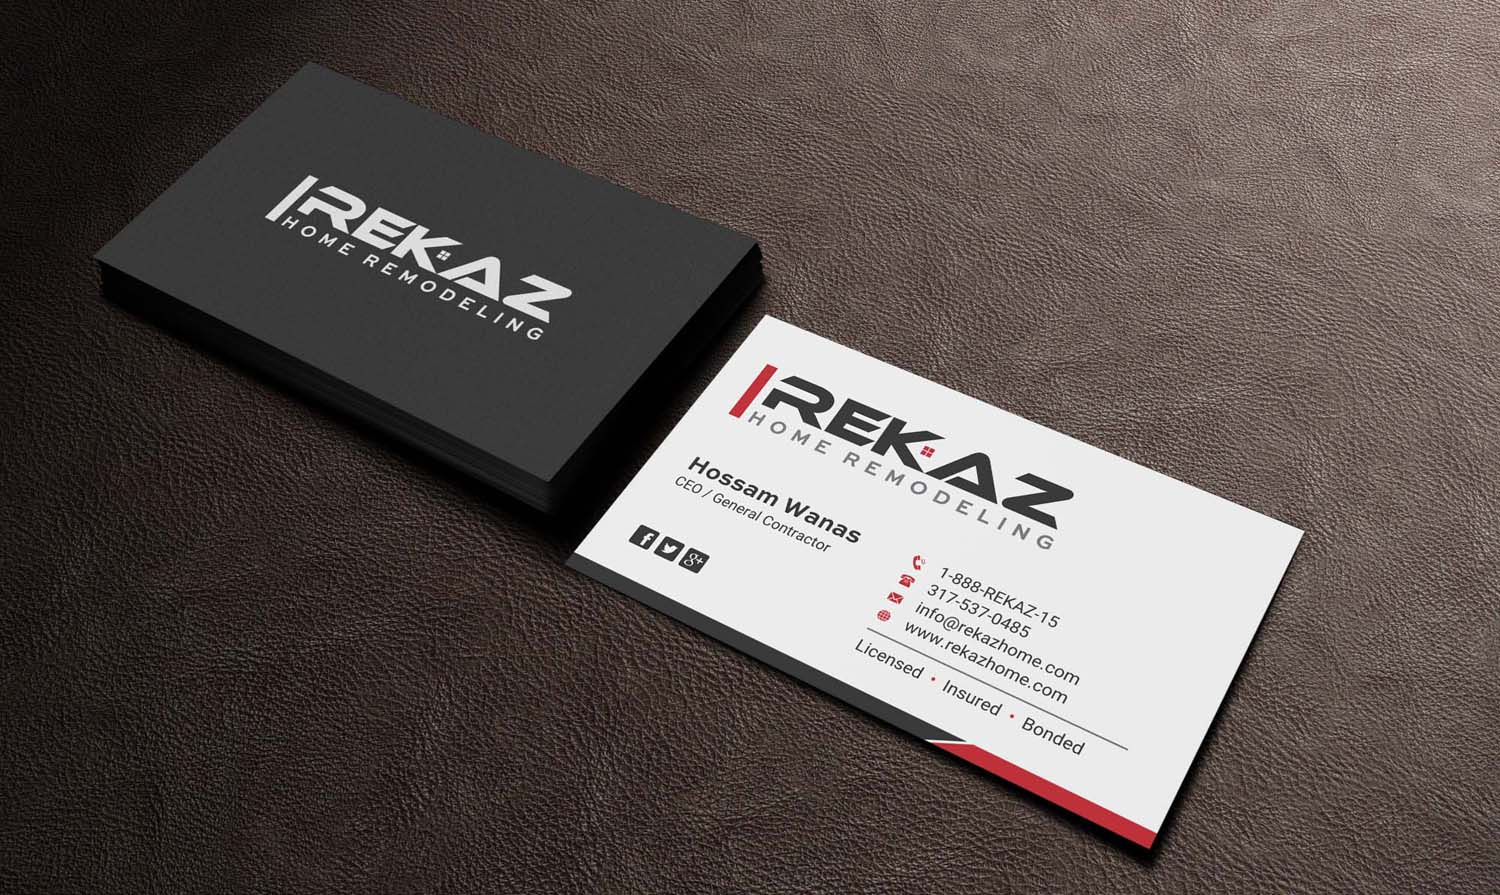 Home remodeling business cards choice image free business cards home remodeling business cards images free business cards business card design for rekaz llc by indianashok magicingreecefo Image collections